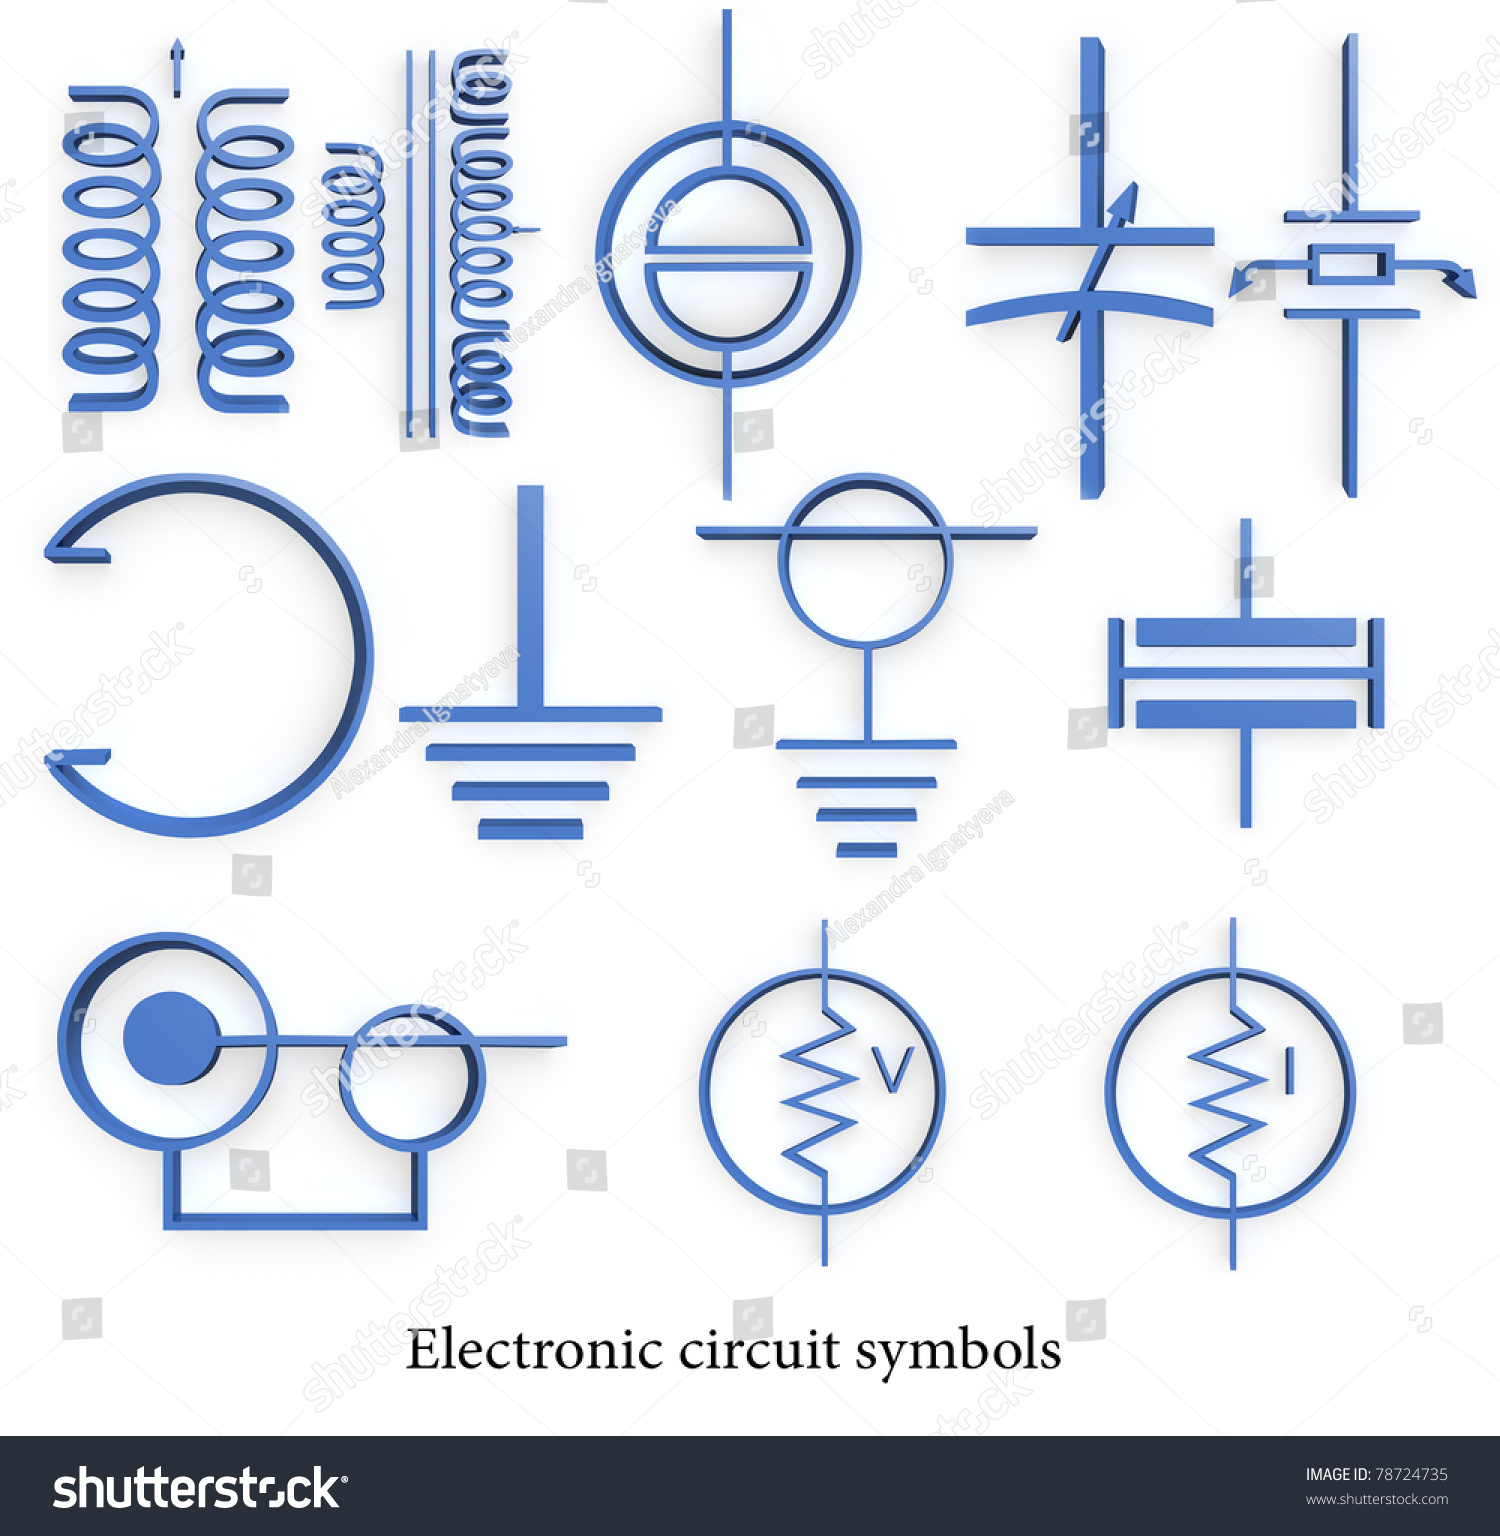 Electronic circuit symbols stock illustration 78724735 shutterstock biocorpaavc Gallery